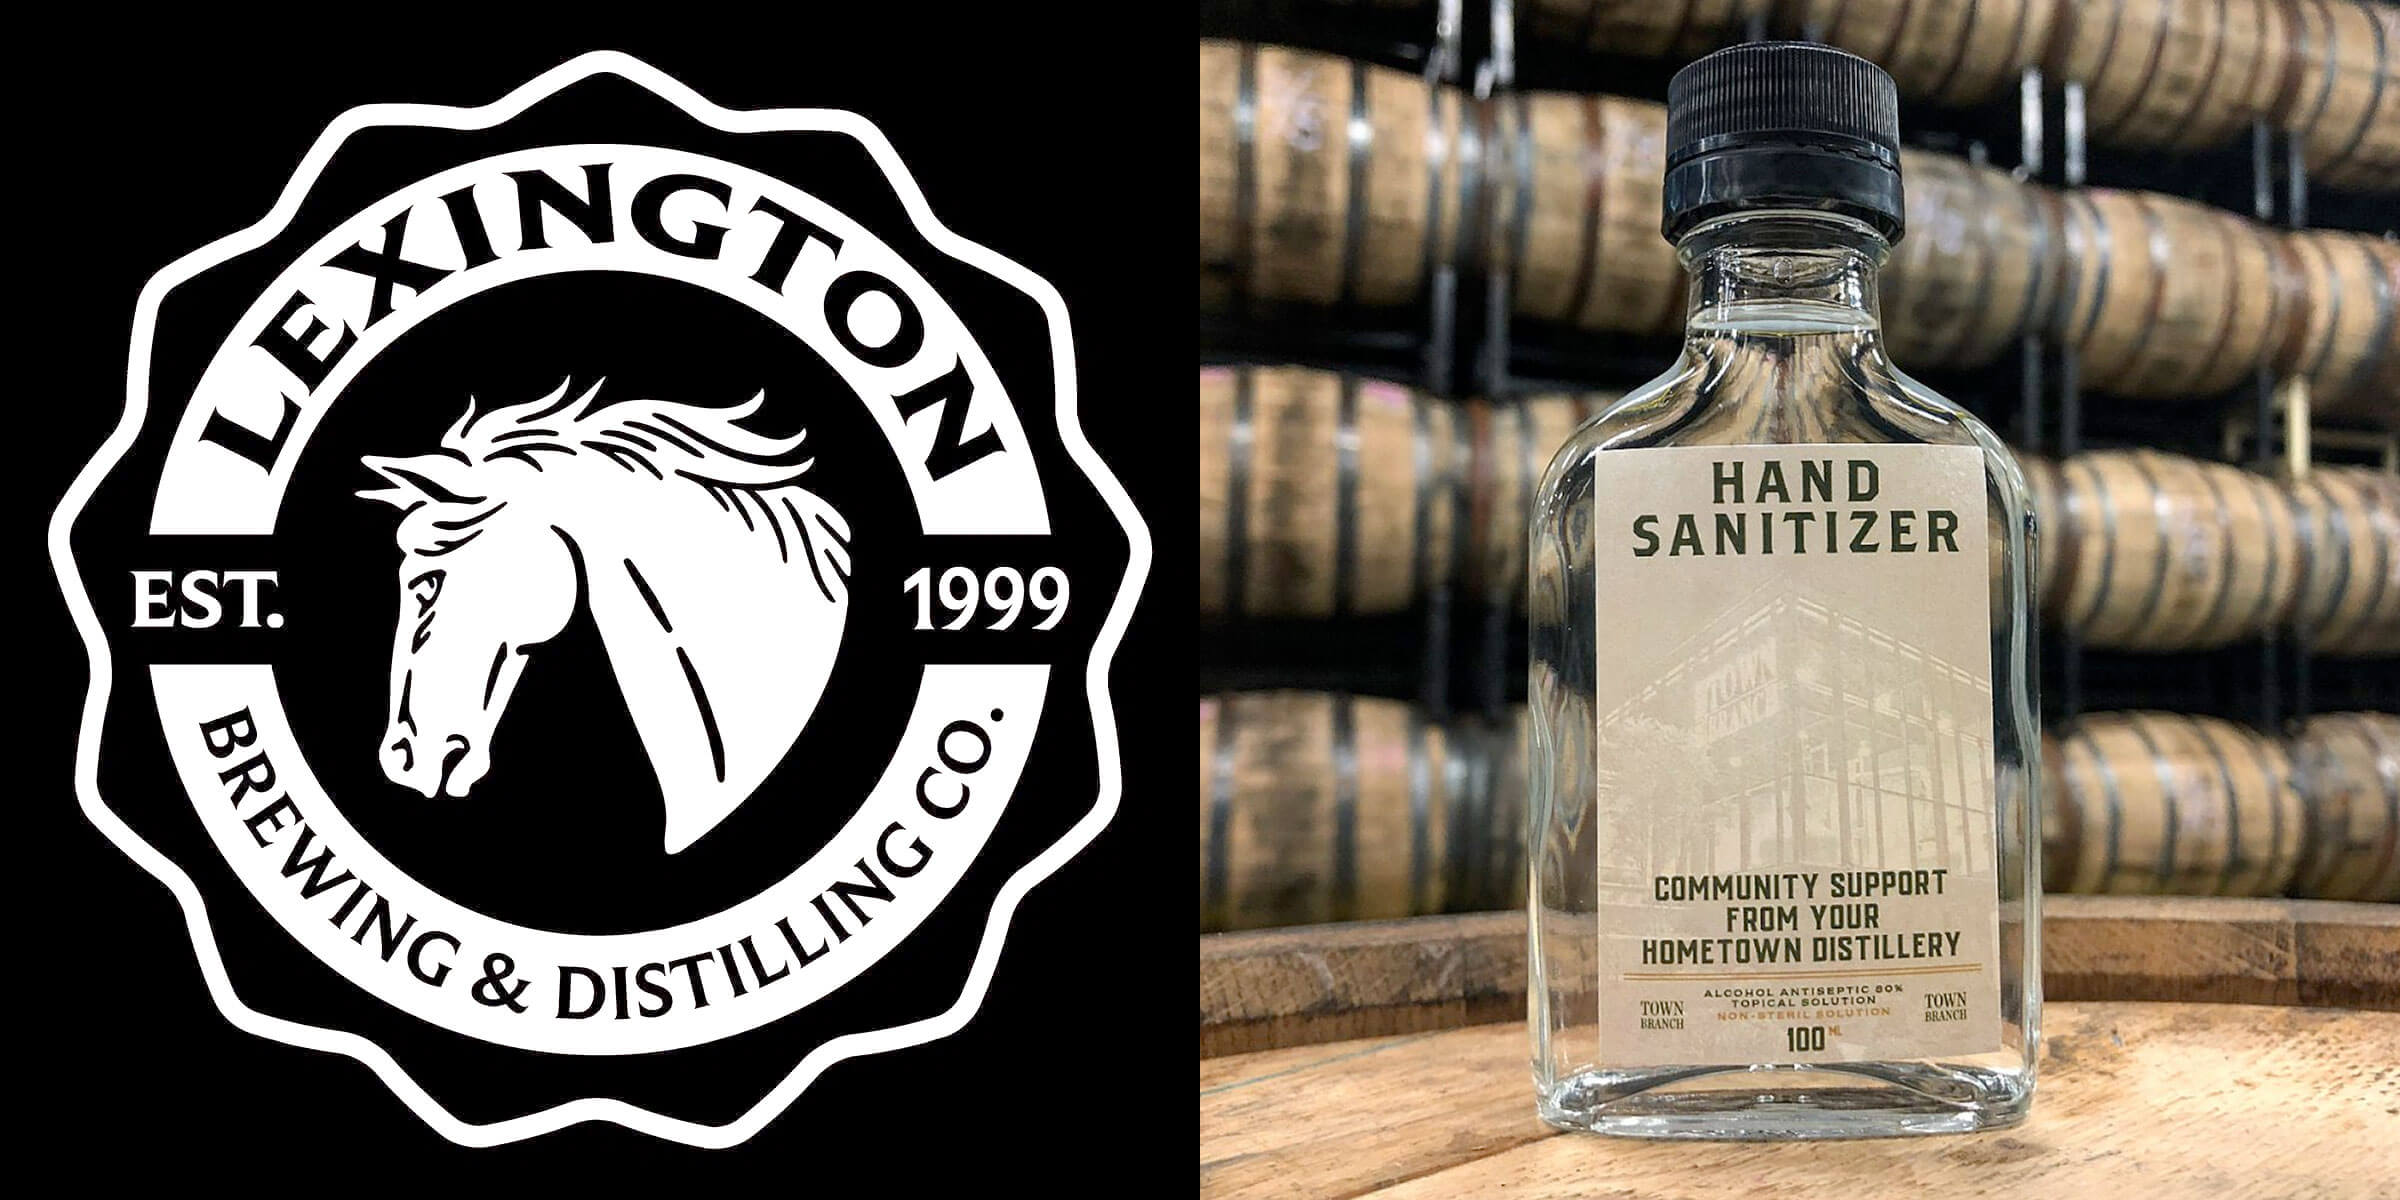 Lexington Brewing & Distilling Co. is using its alcohol supply to produce hand sanitizer and provide it free of charge for the Central Kentucky community.